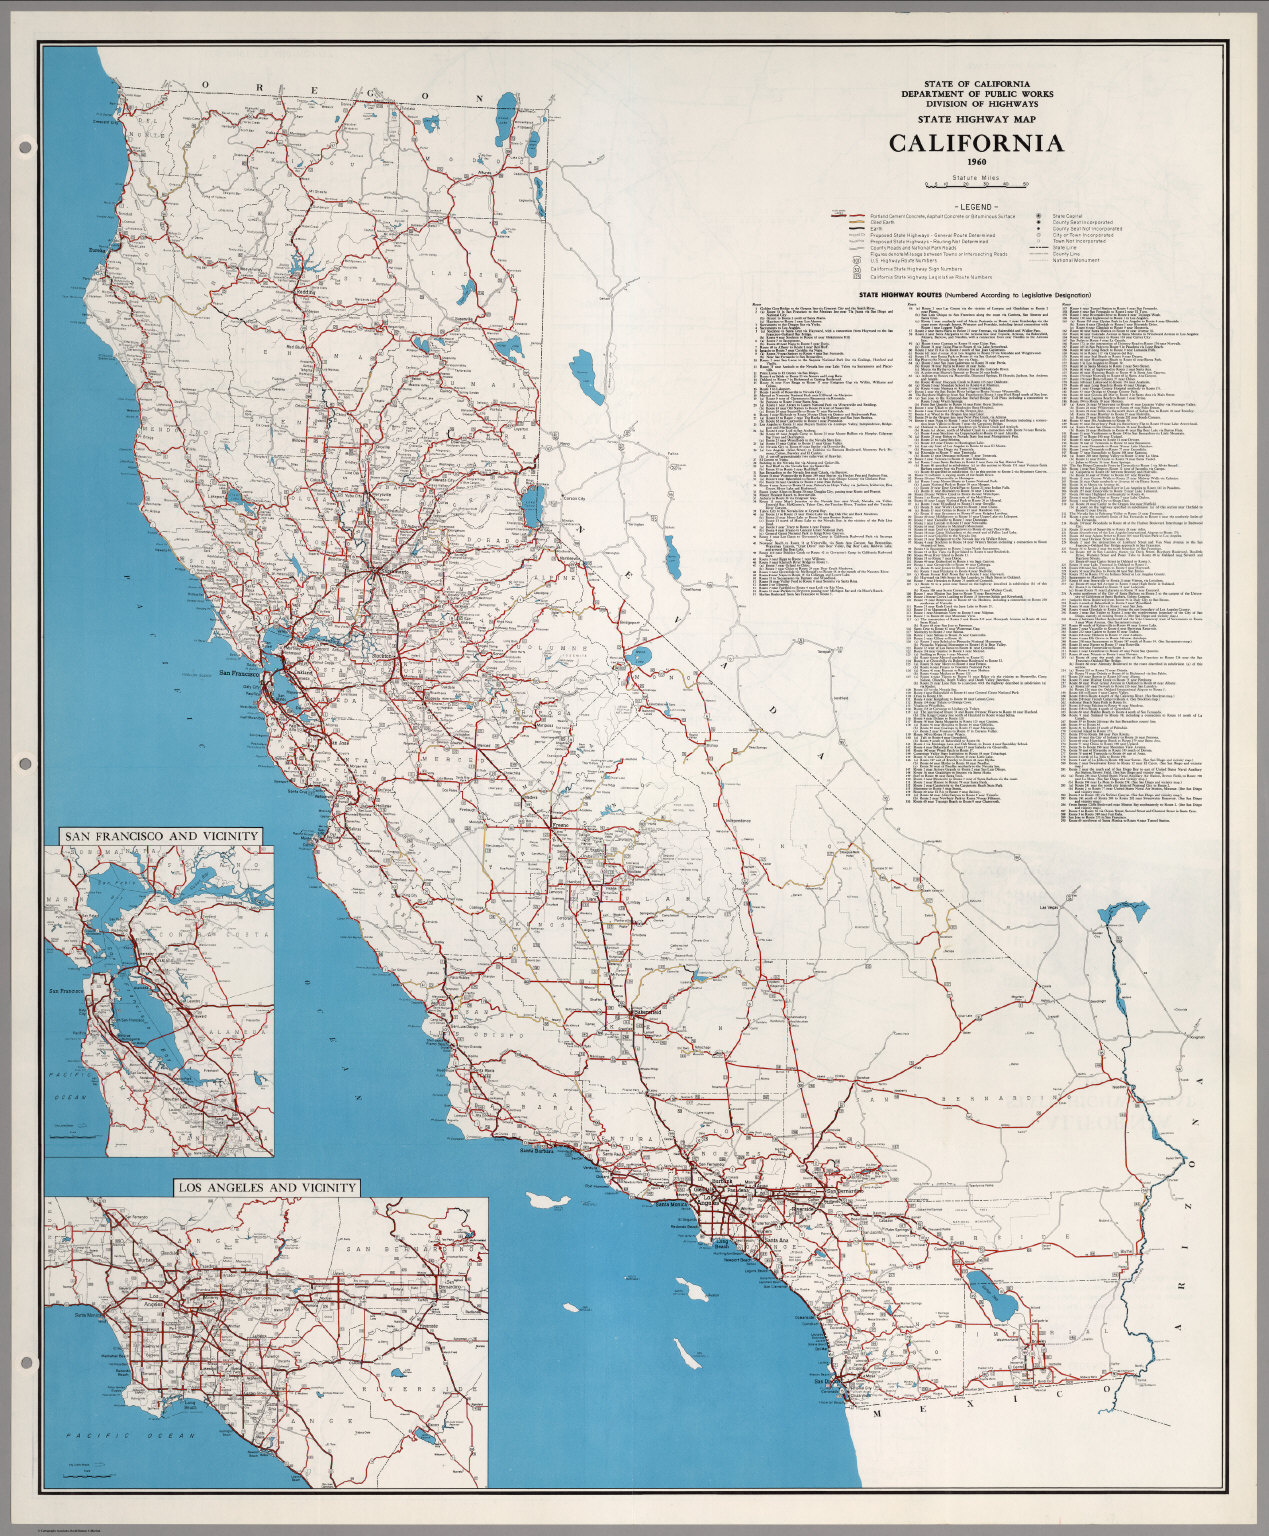 State Highway Map California David Rumsey Historical Map - Map of california highways